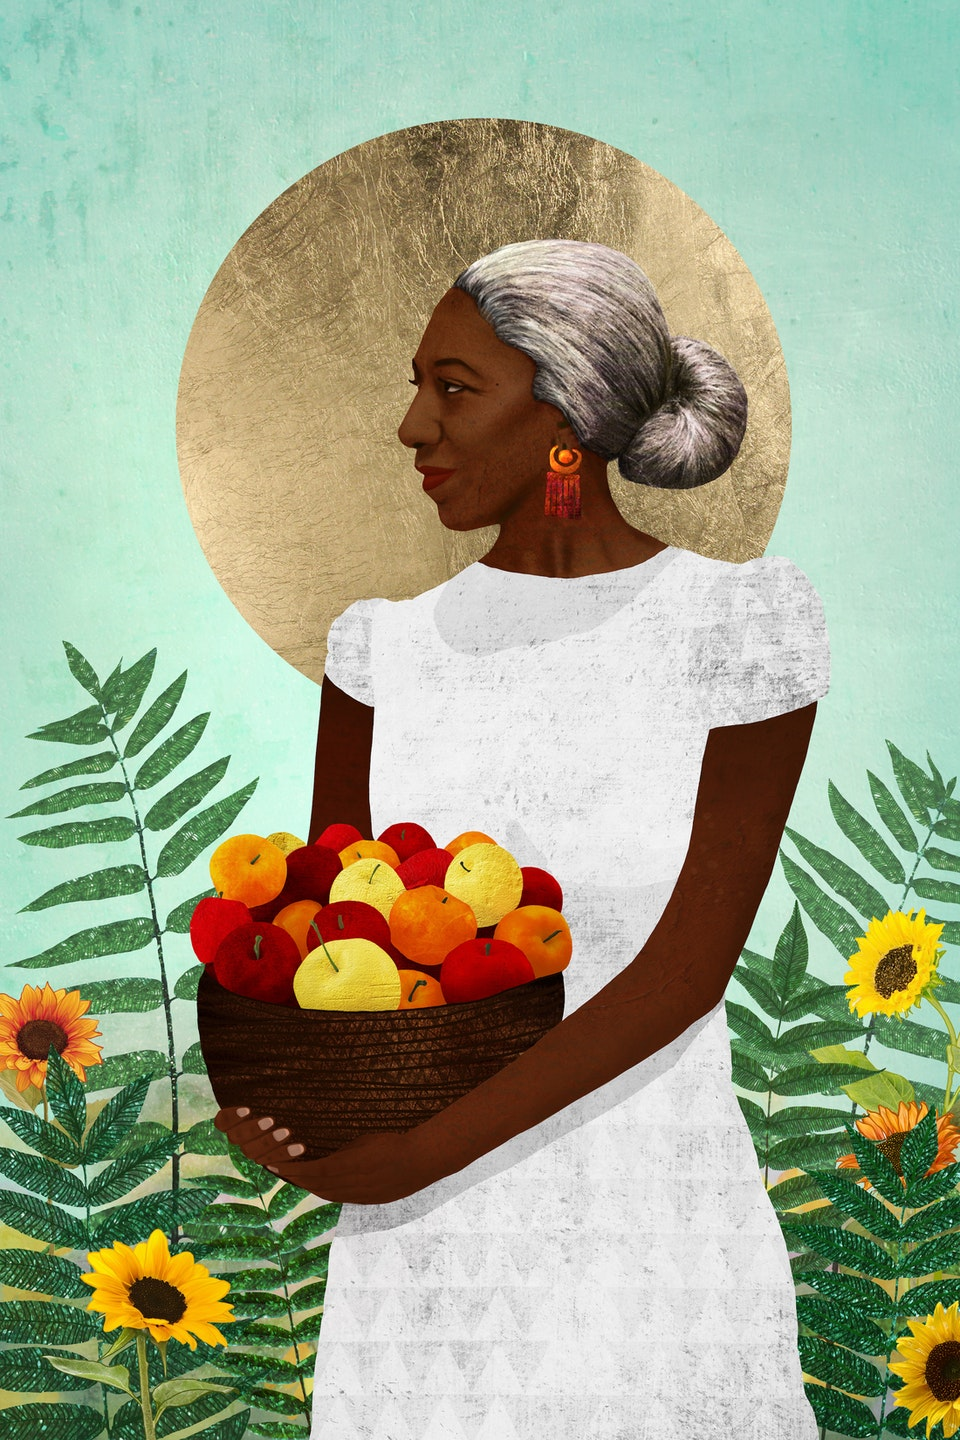 PAINTING - Edna Lewis